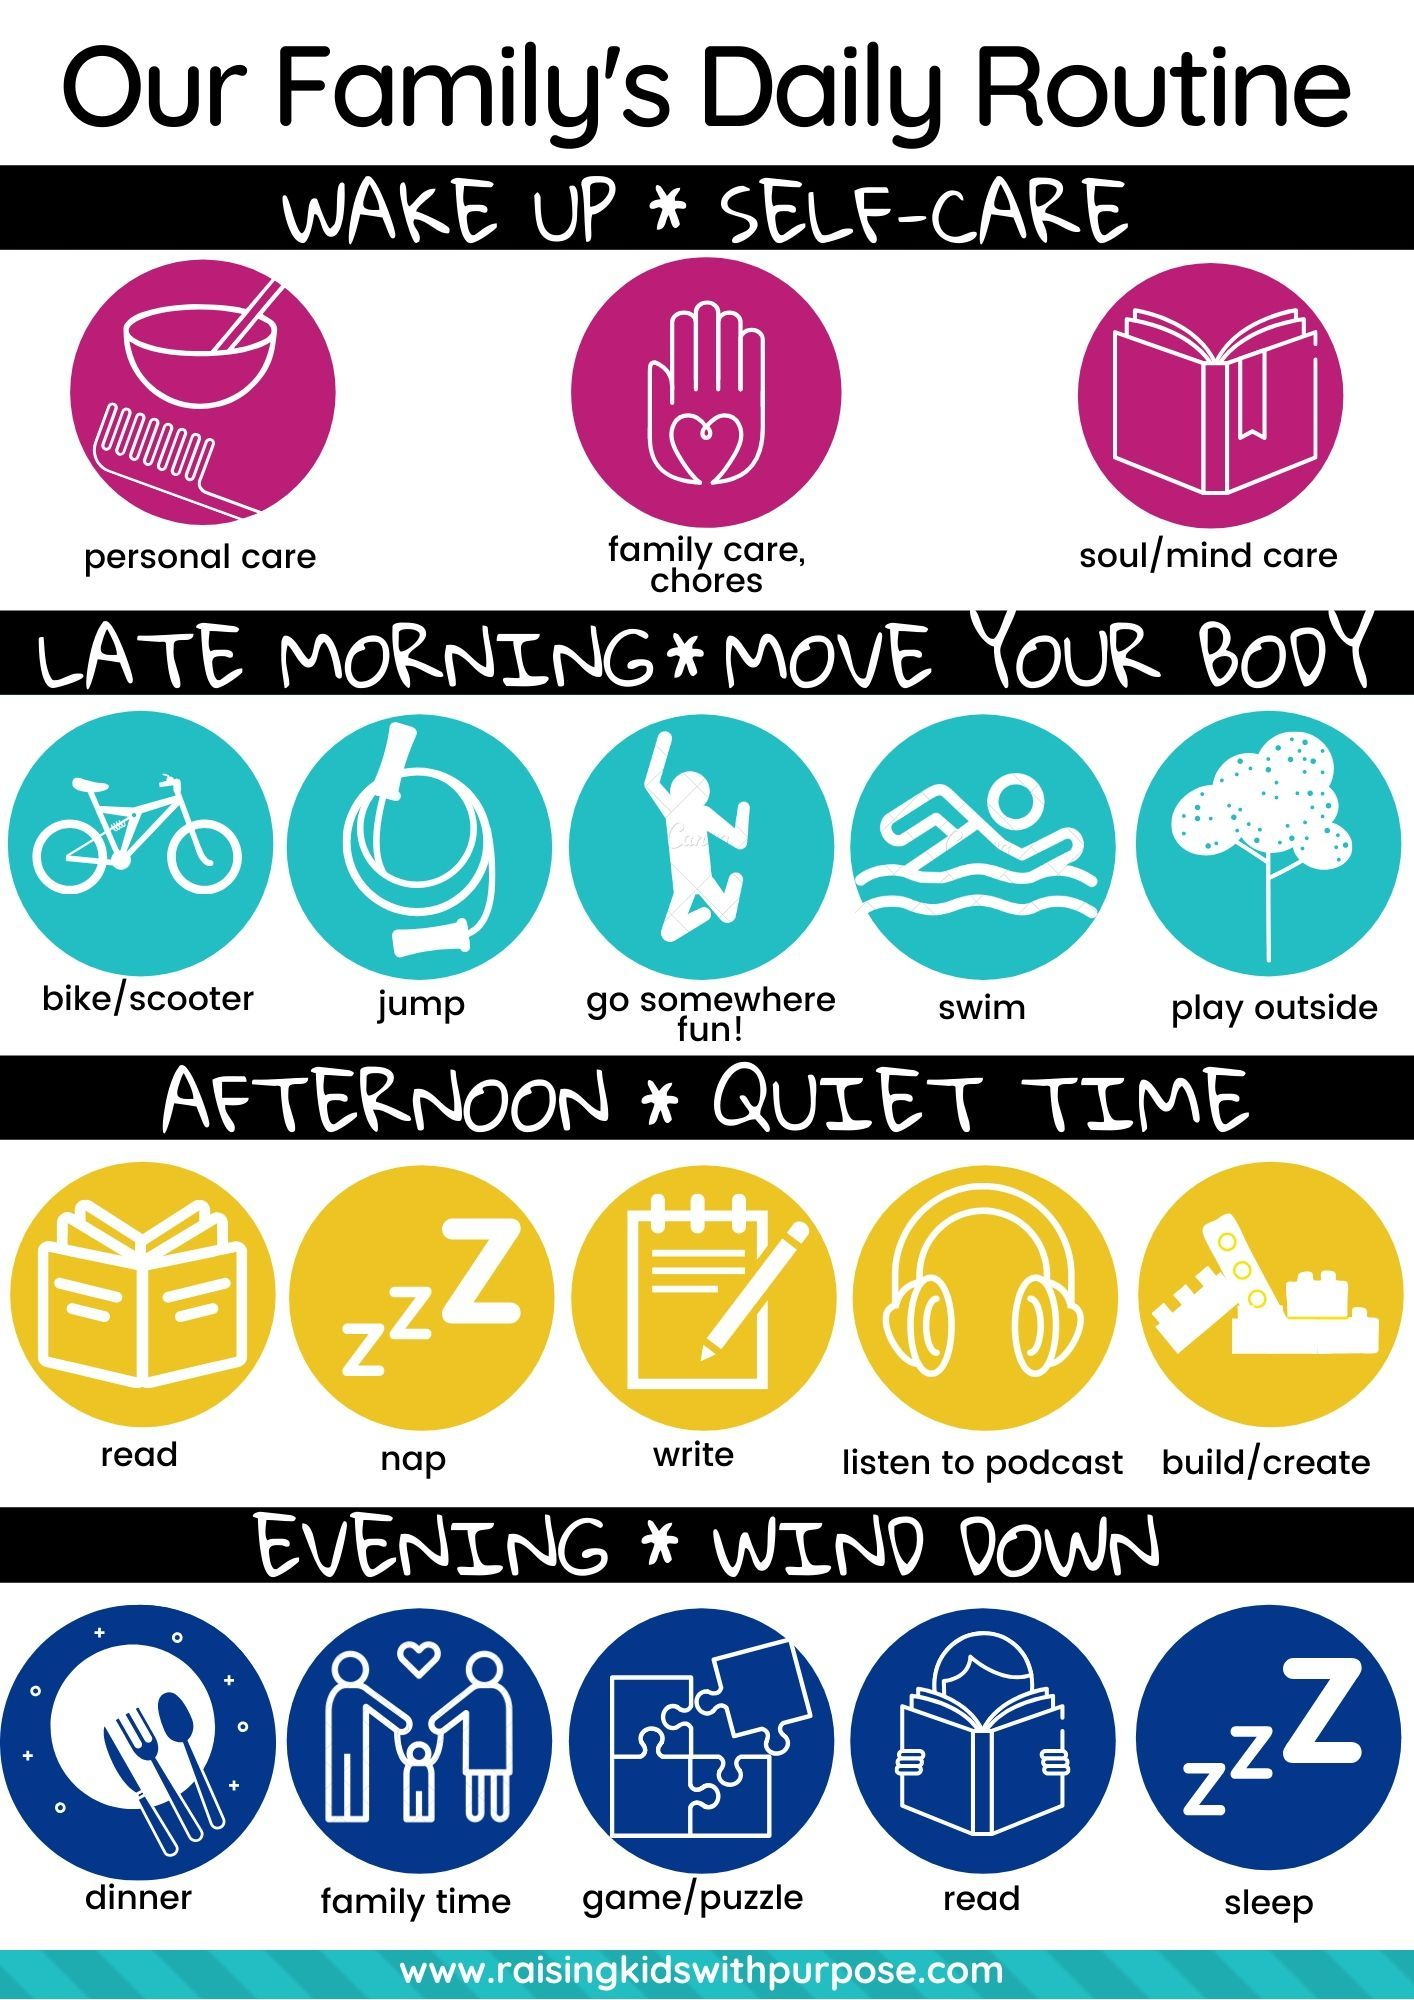 Daily Routine Chart For Families In